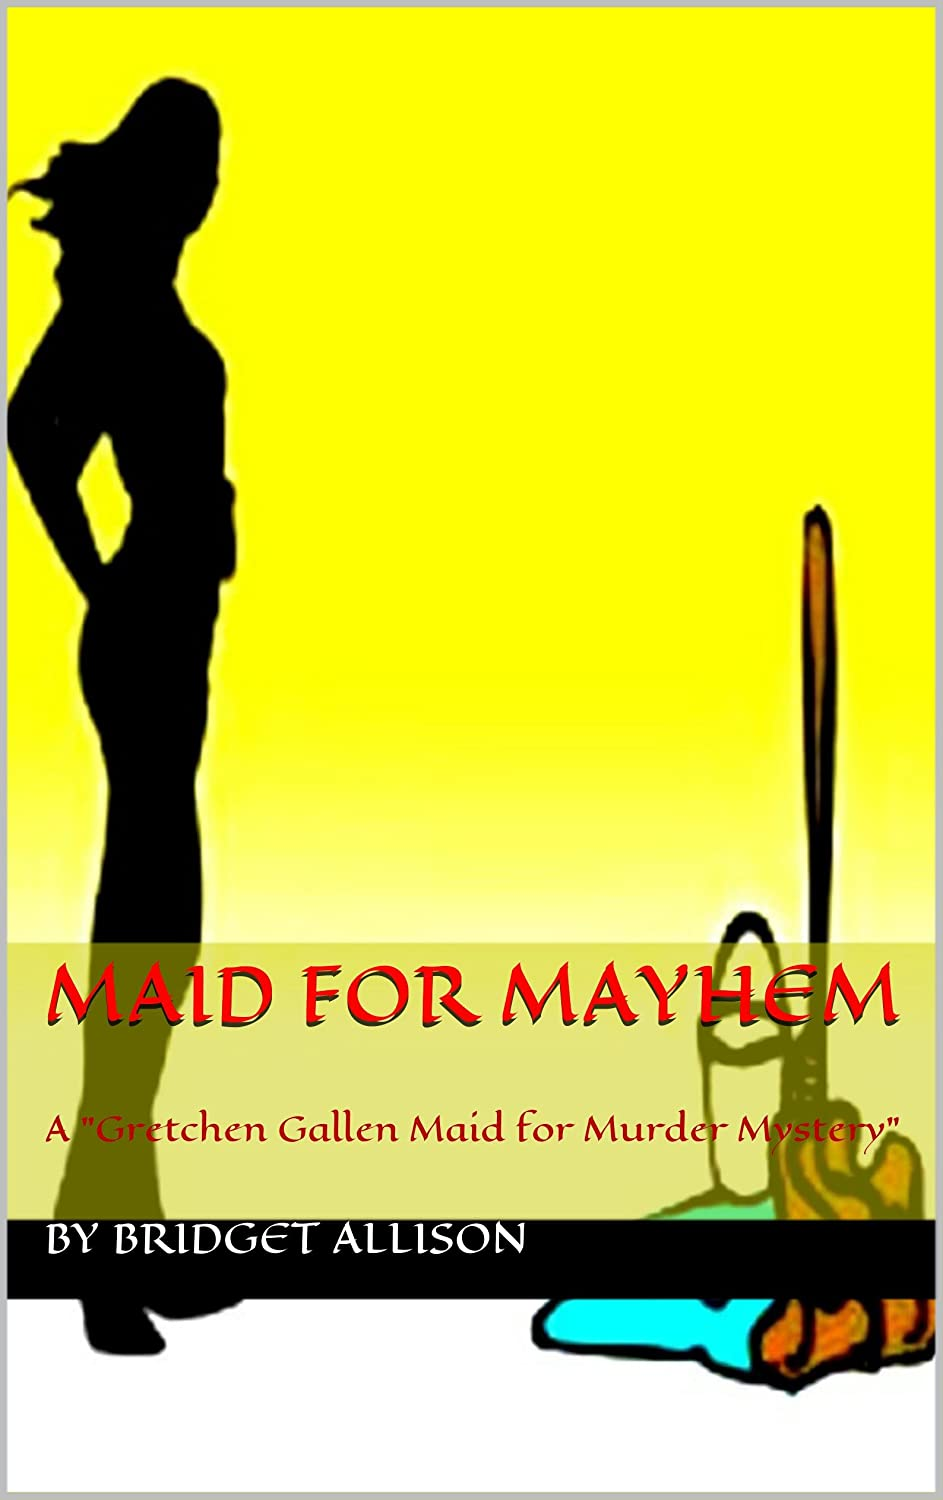 1-mayhemcover1ared